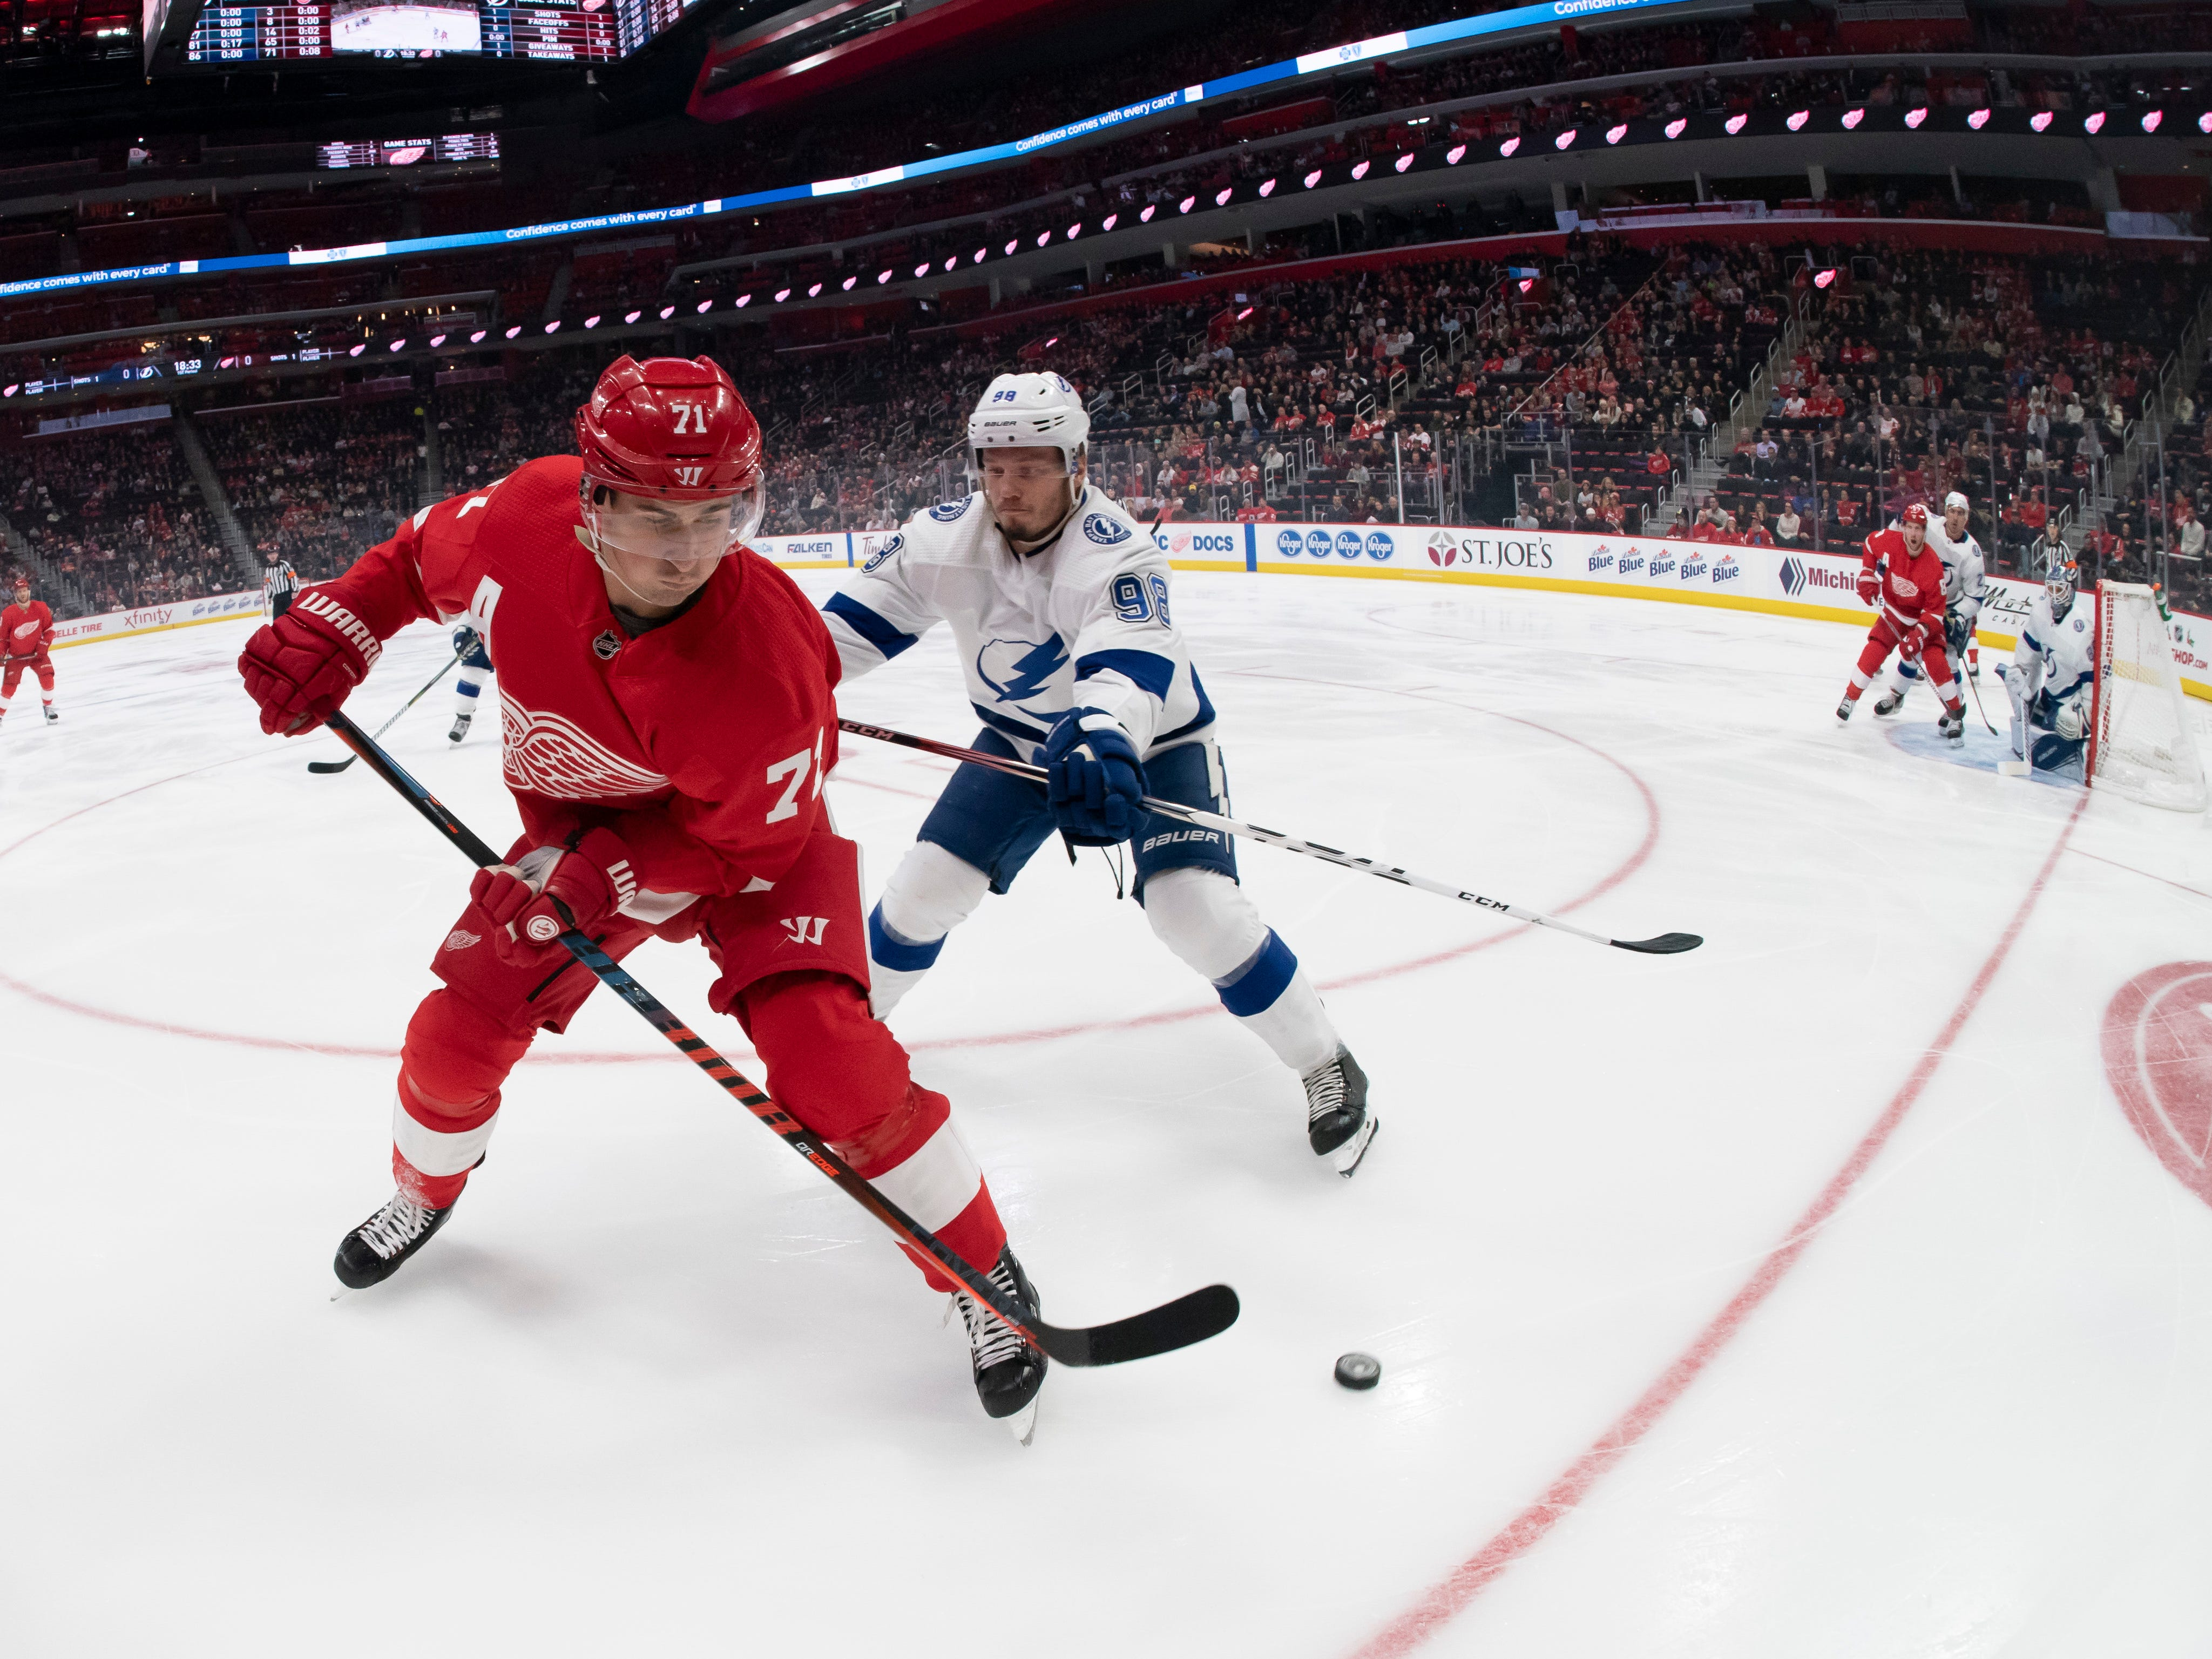 Detroit center Dylan Larkin keeps the puck away from Tampa Bay defenseman Mikhail Sergachev during  first period action of their match at Little Caesars Arena, in Detroit, Tuesday night, December 4, 2018.